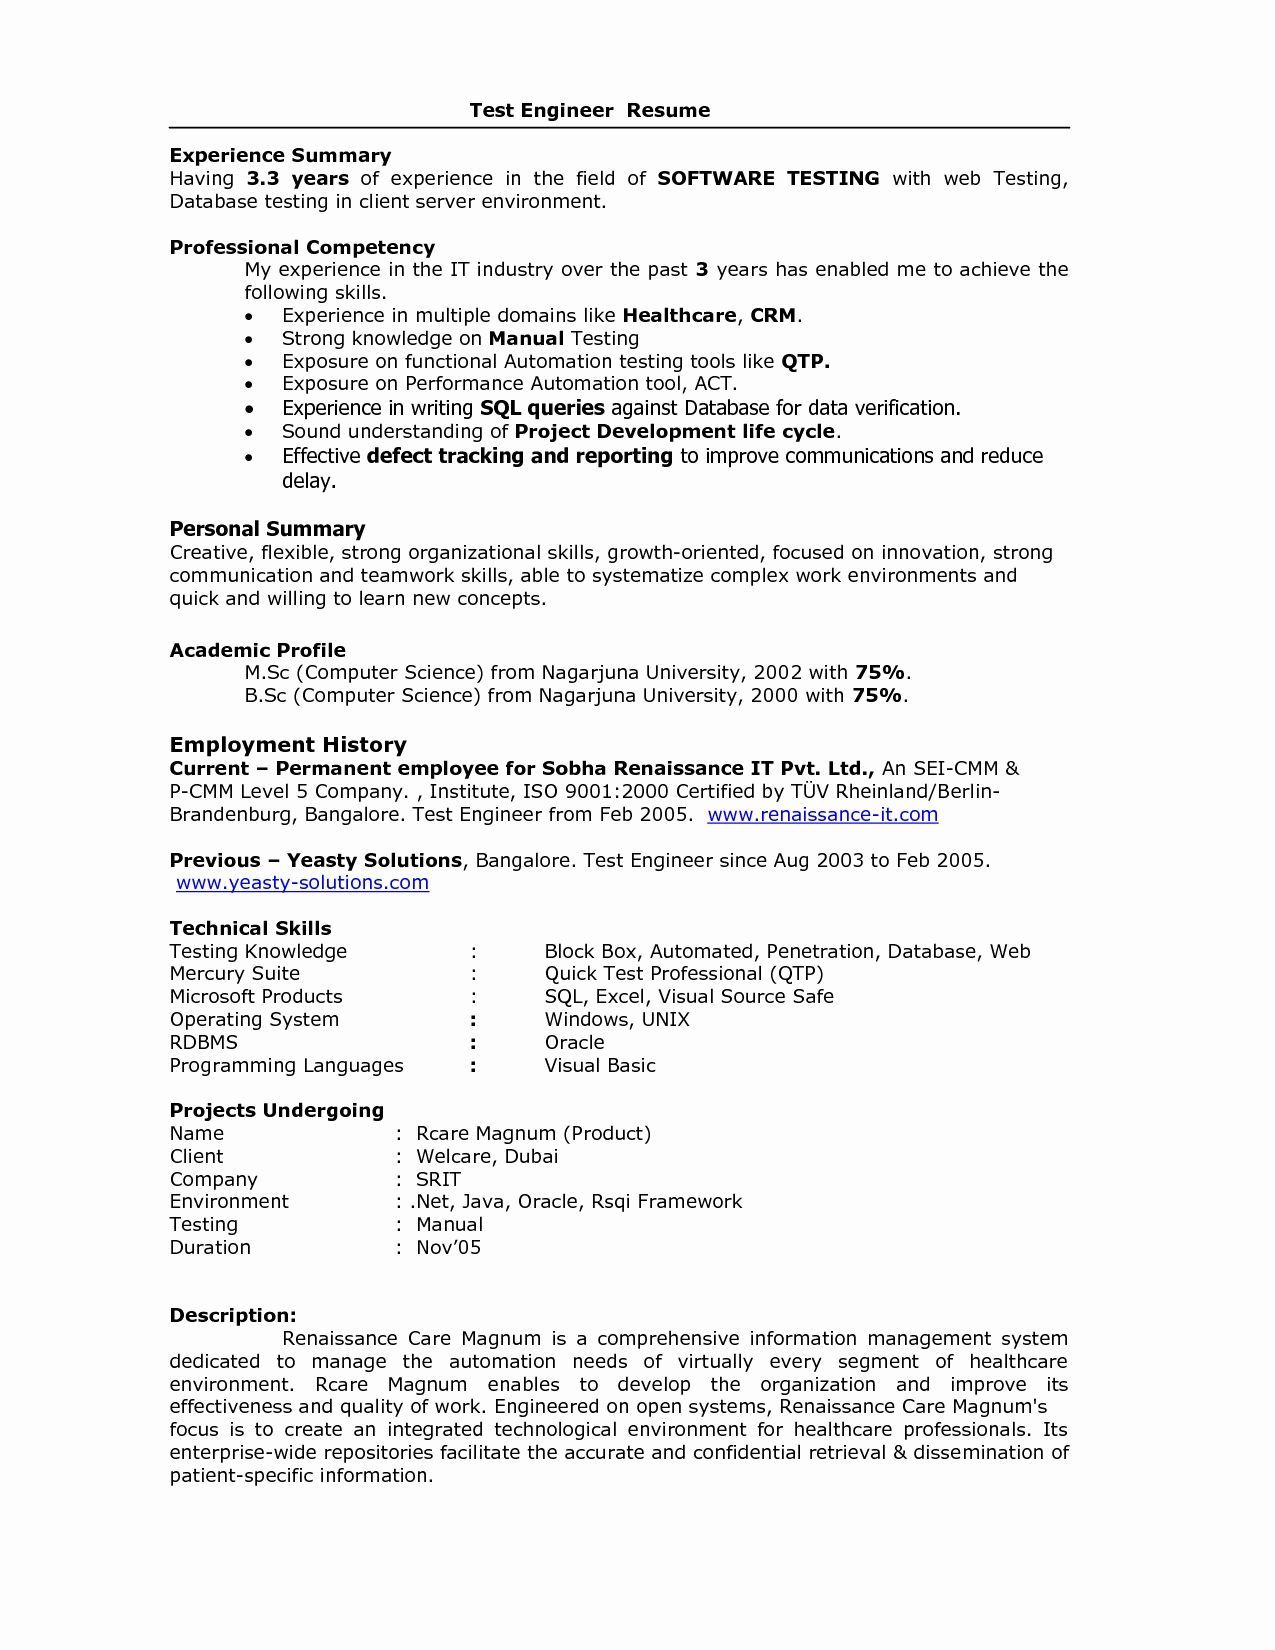 Sample Resume Format For 5 Years Experience Sample Resume Format